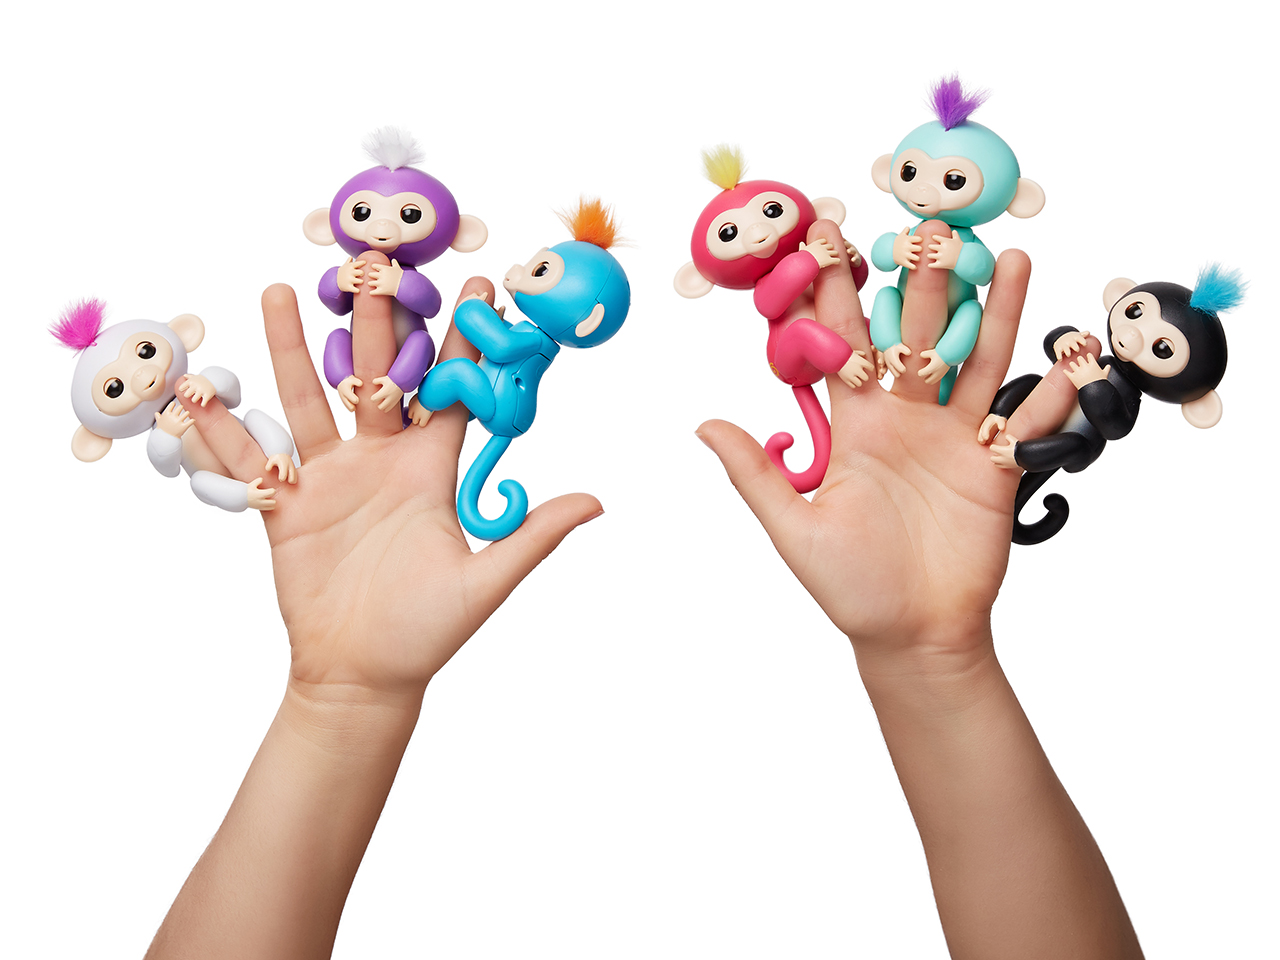 Where to buy Fingerlings—the hottest toy of 2017